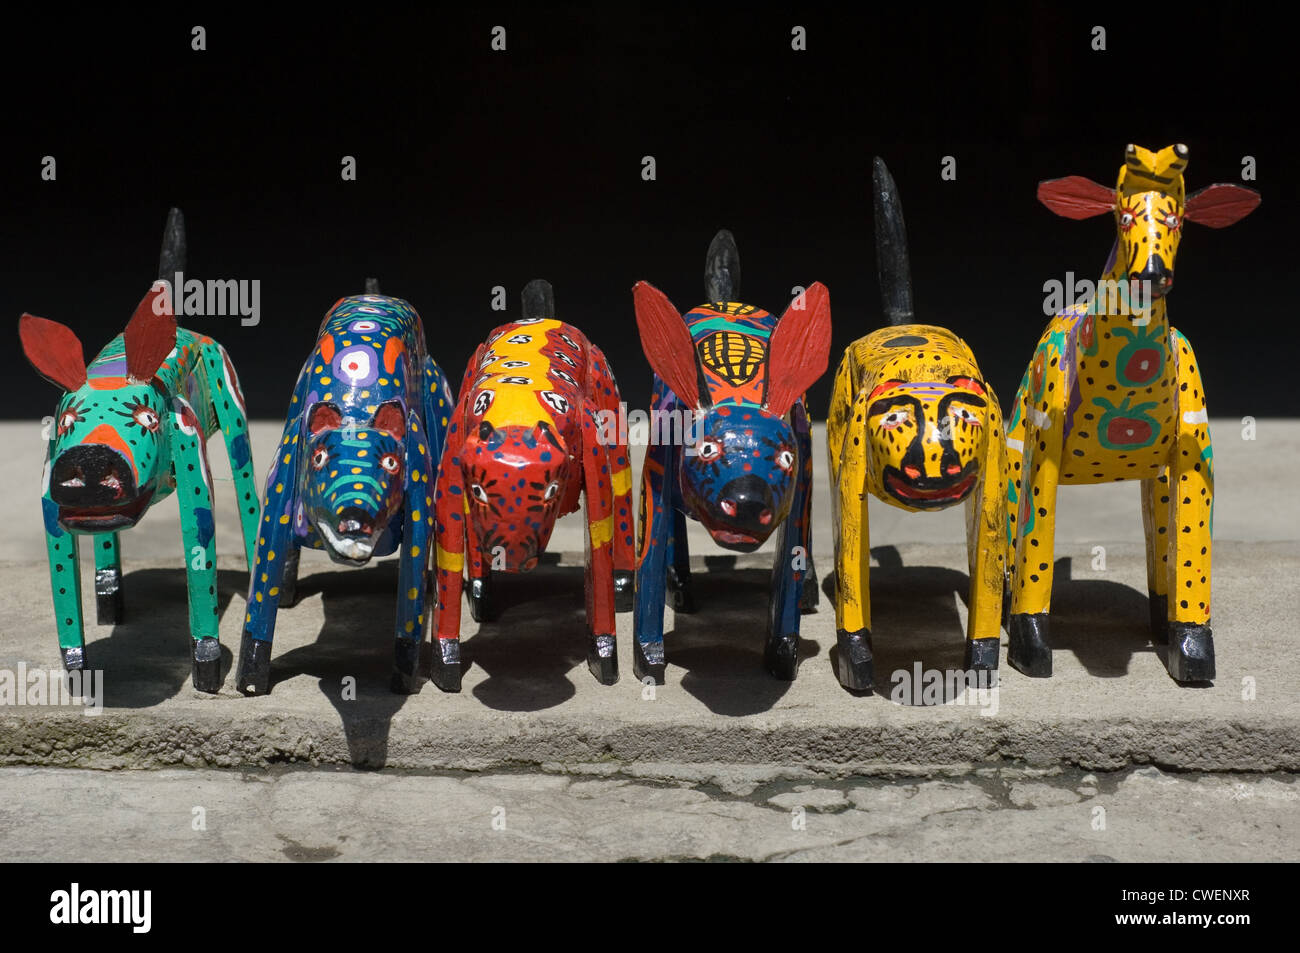 Highly colourful but primitive carved wooden toy animals on sale in the street in Santiago Atitlan, Guatemala. - Stock Image